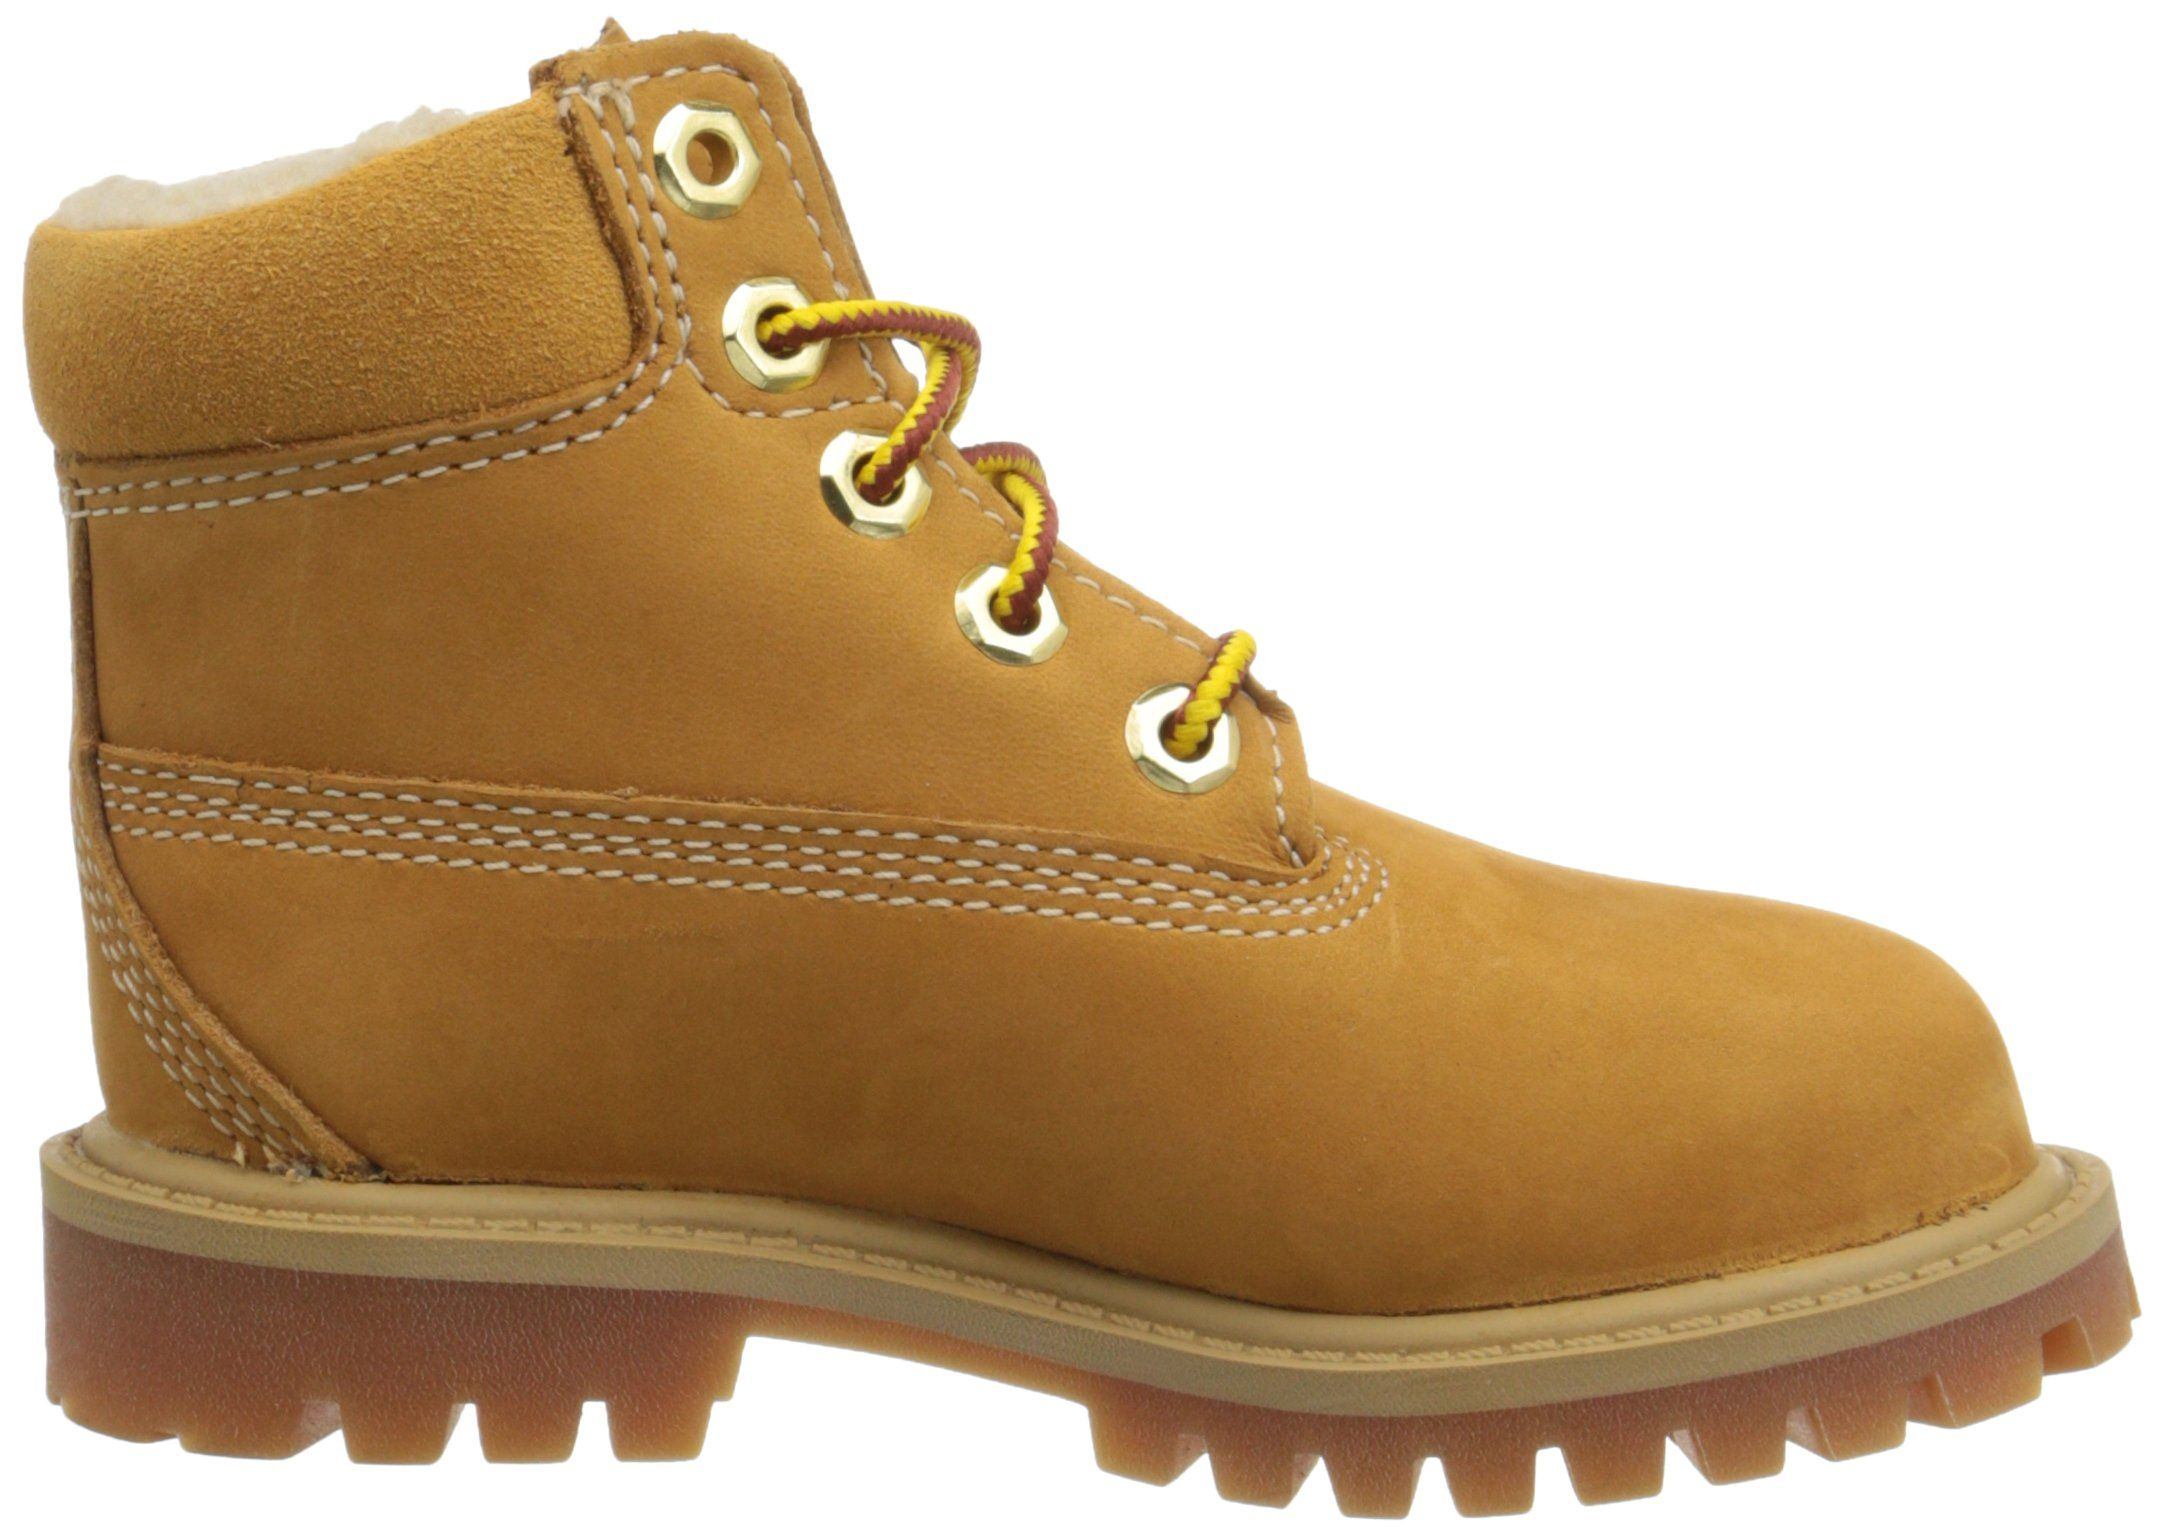 c16c463ac539 Timberland 6 Inch Premium with Faux Shearling Boot Closure Toddler Little  Kid Big Kid Wheat Nubuck 5 M US Toddler     To view further for this item